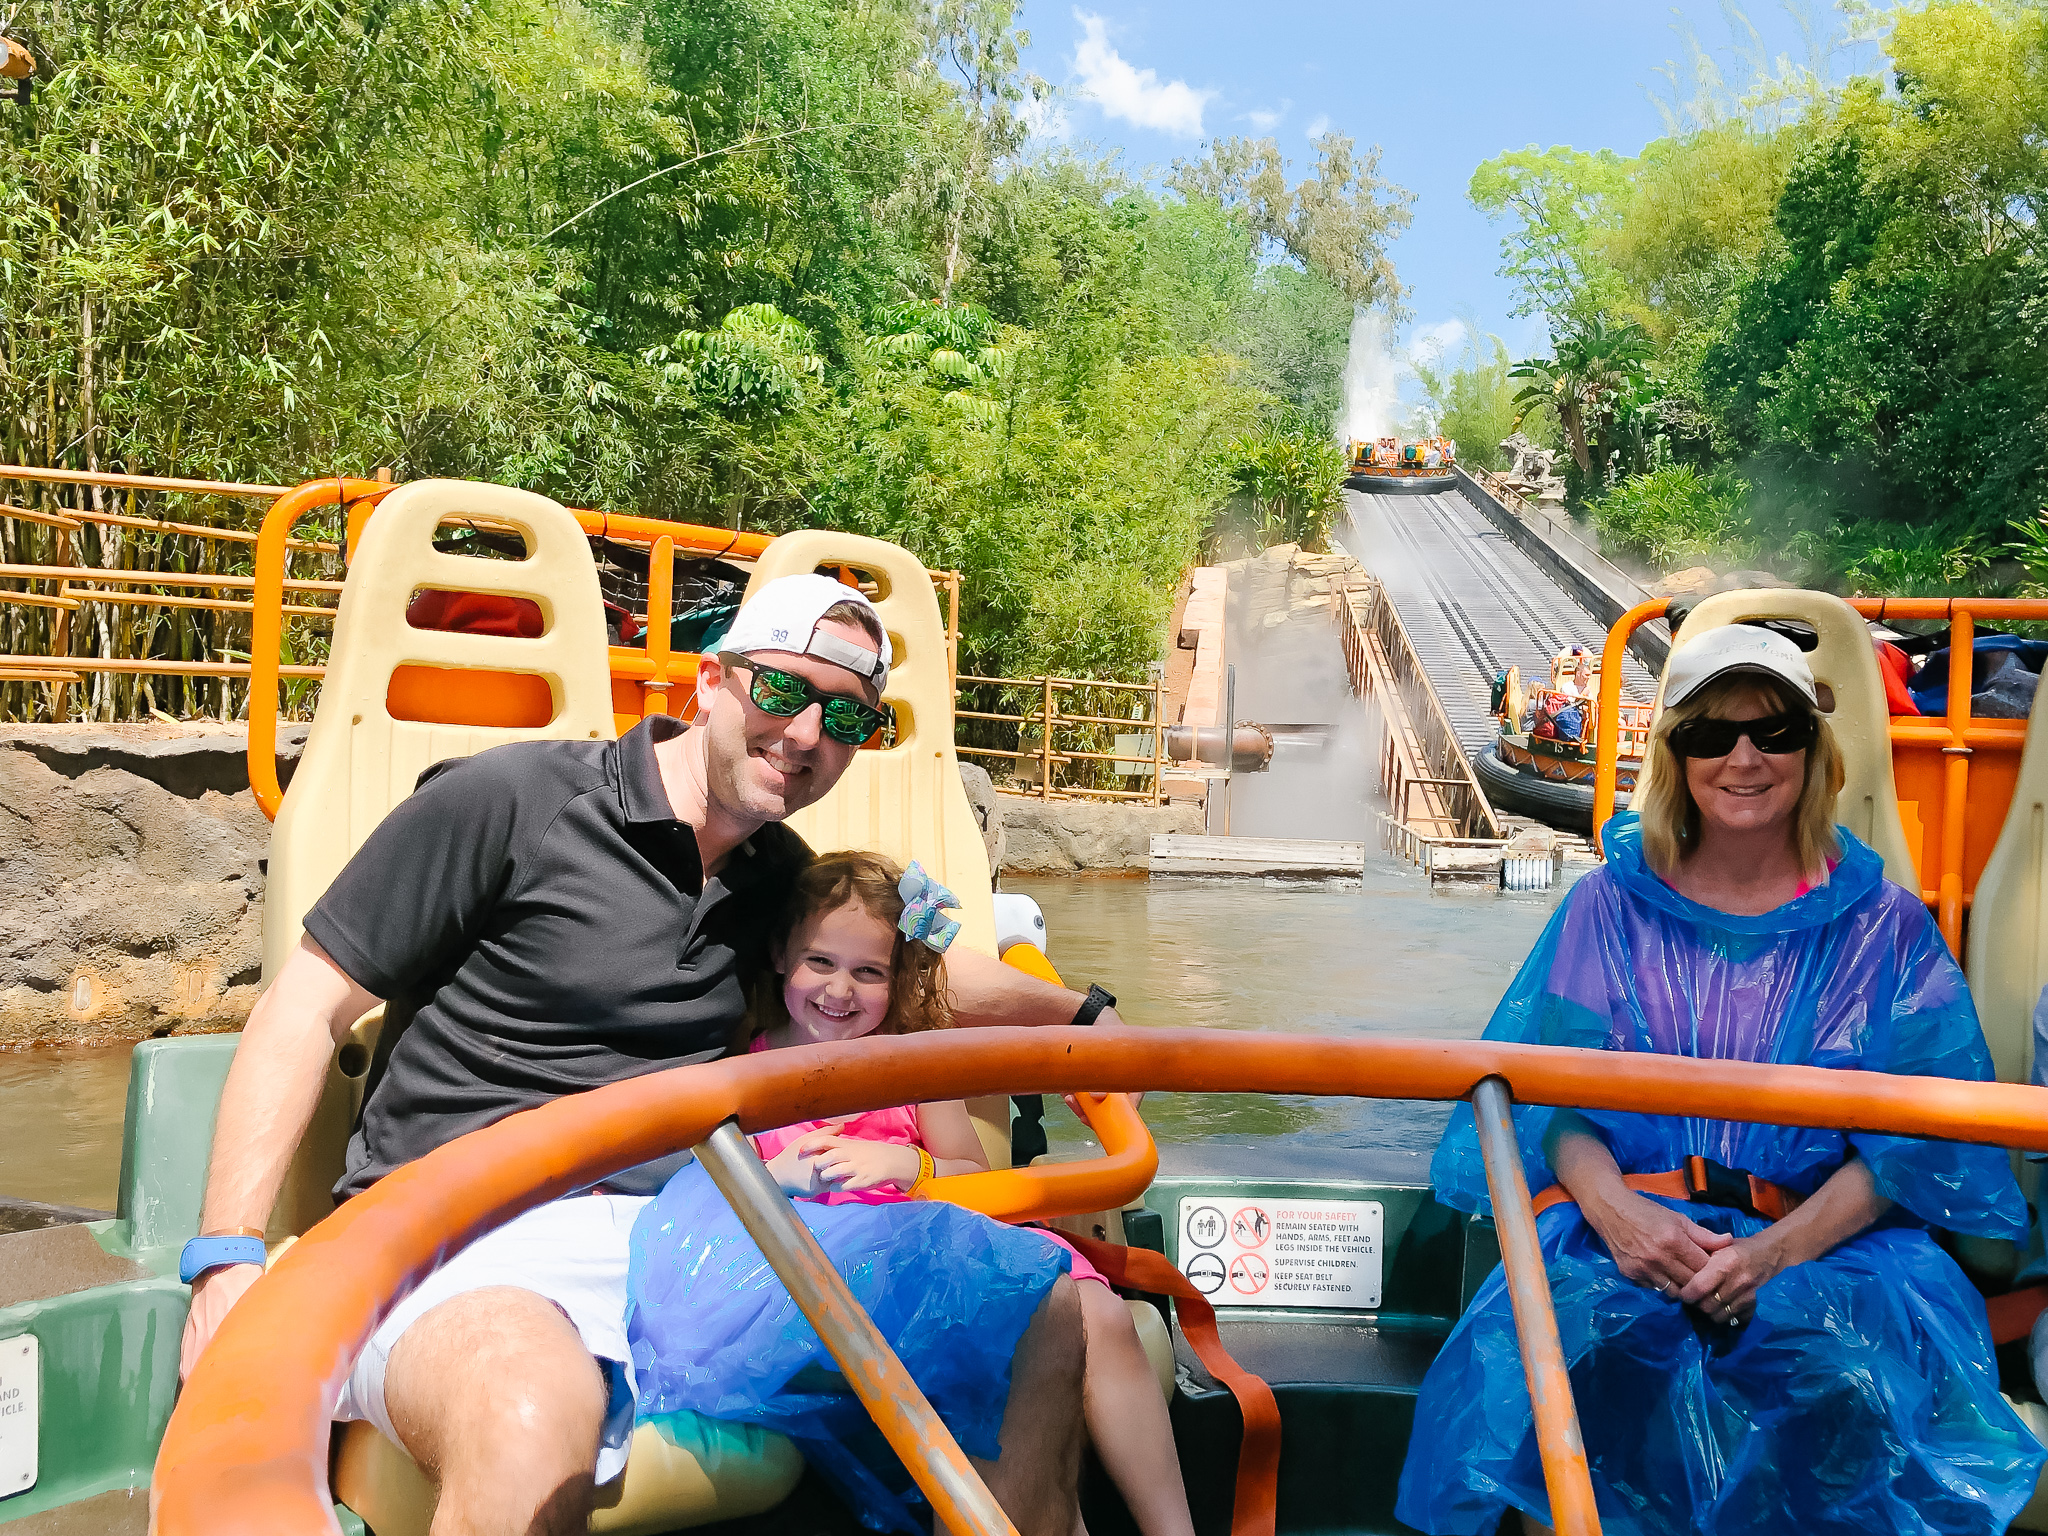 ride photo Disney World